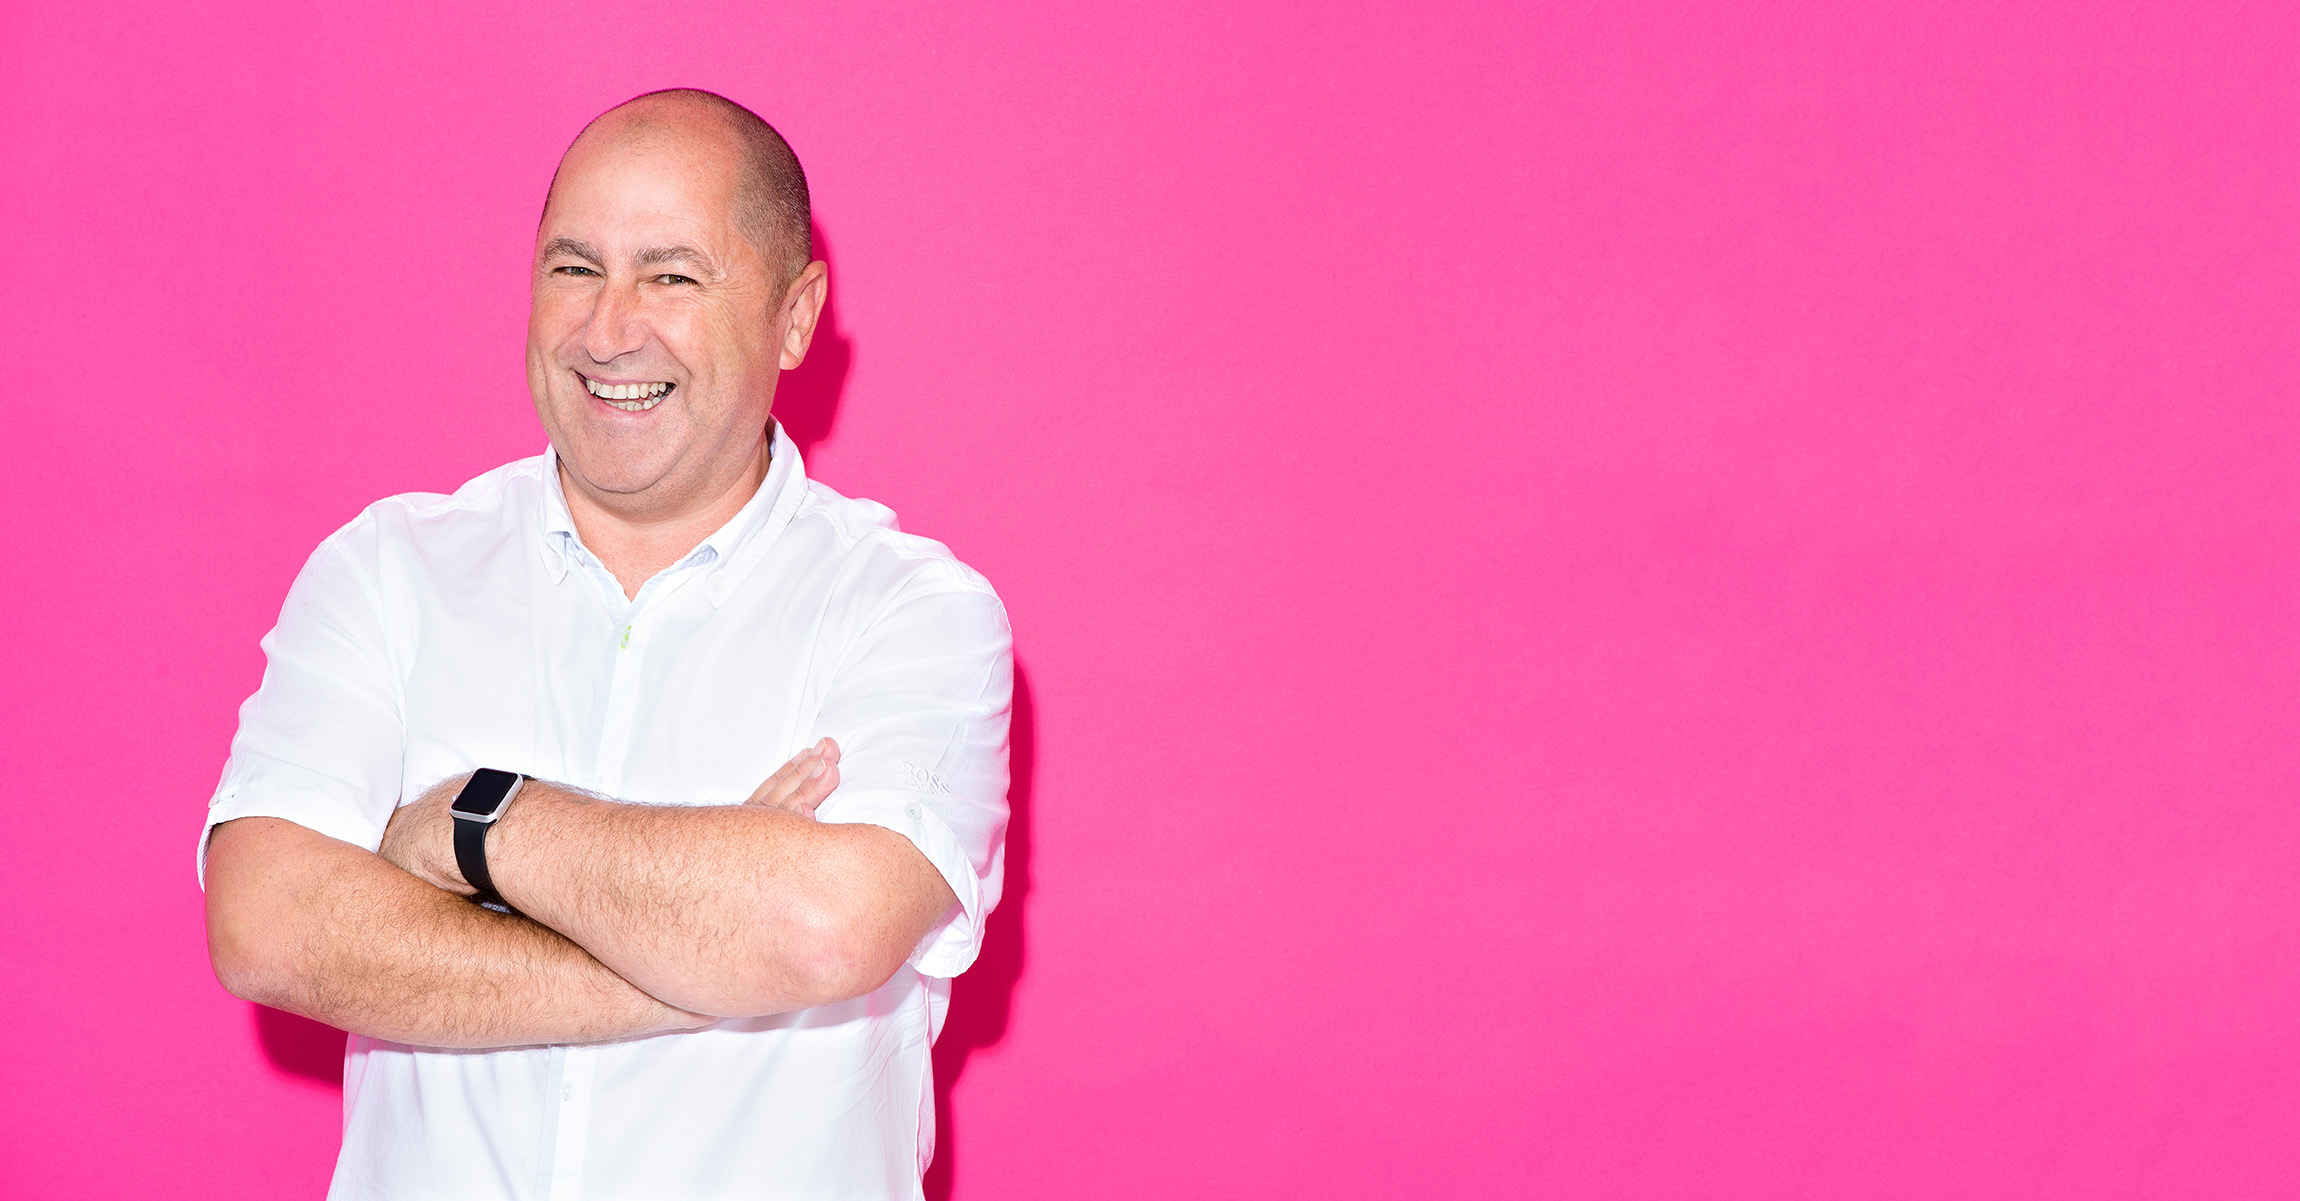 Man wearing casual white shirt photographed on bright pink background